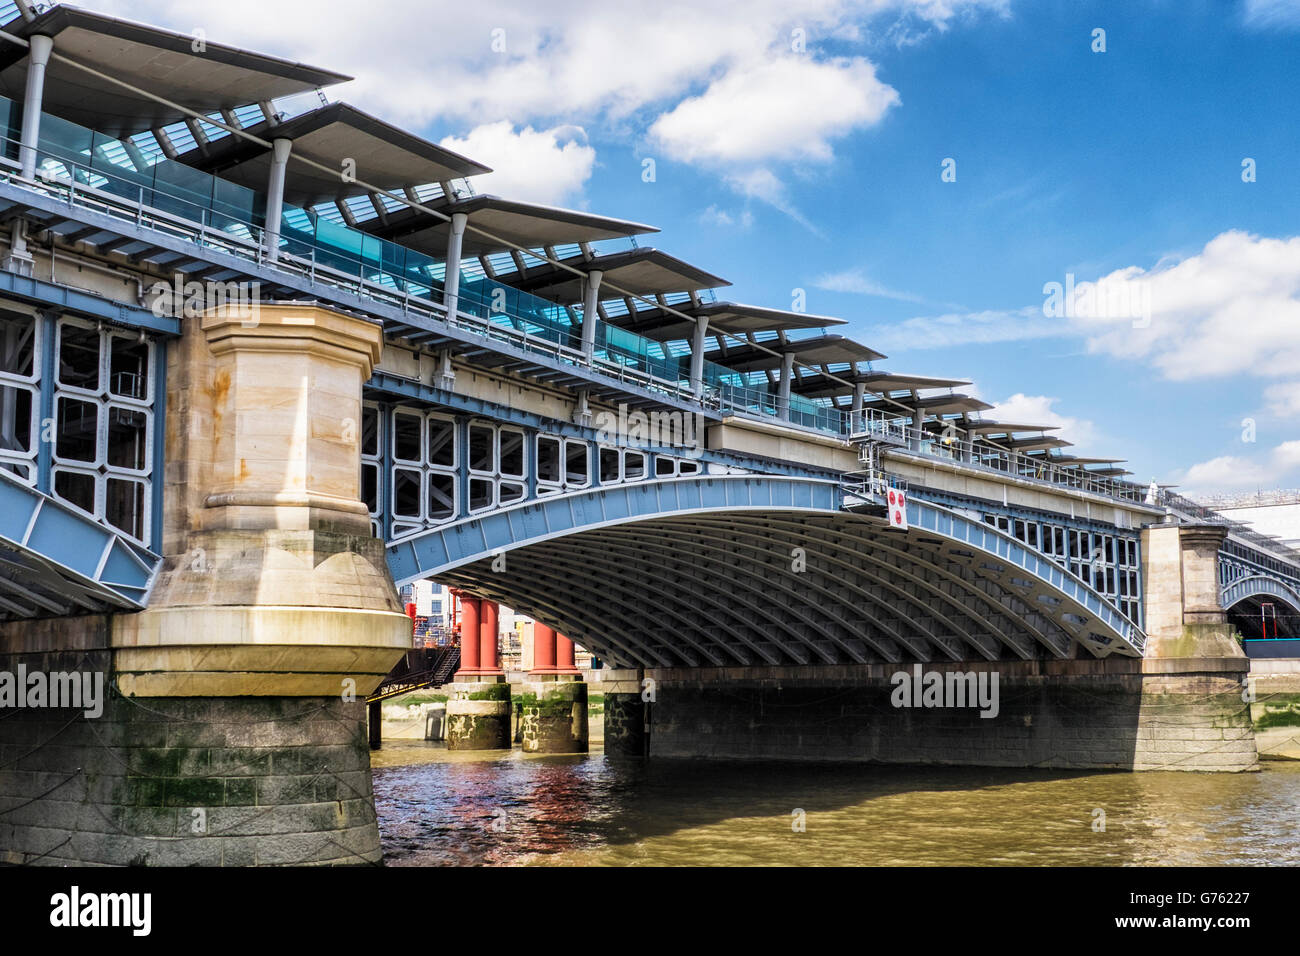 blackfriars-railway-bridge-across-the-river-thames-with-solar-heating-G76227.jpg